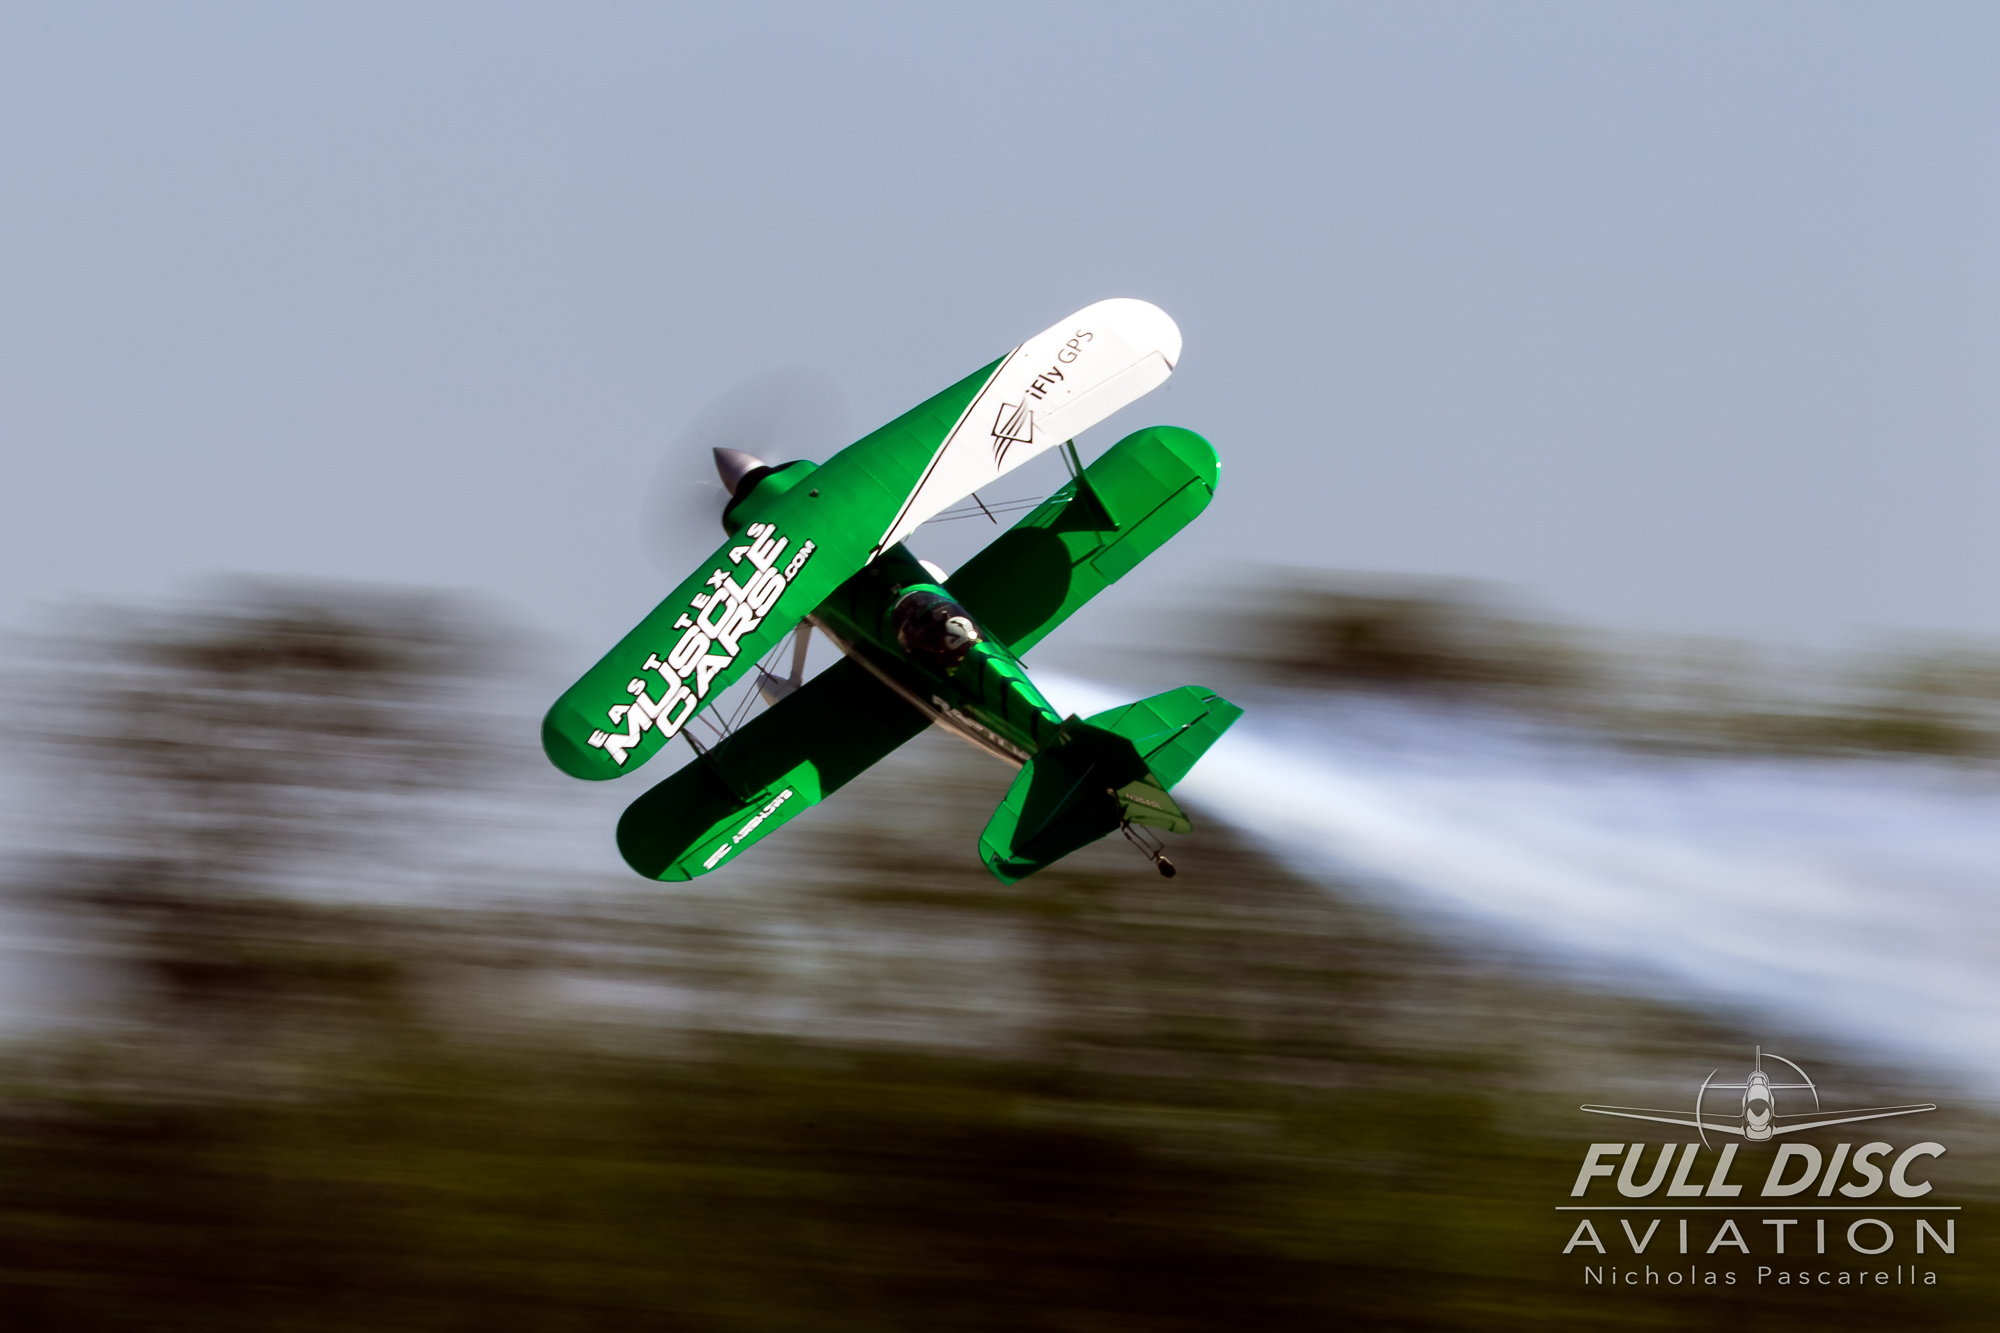 srcairshows_mcasbeaufort_nicholaspascarella_fulldiscavation_aviation_airshow.jpg